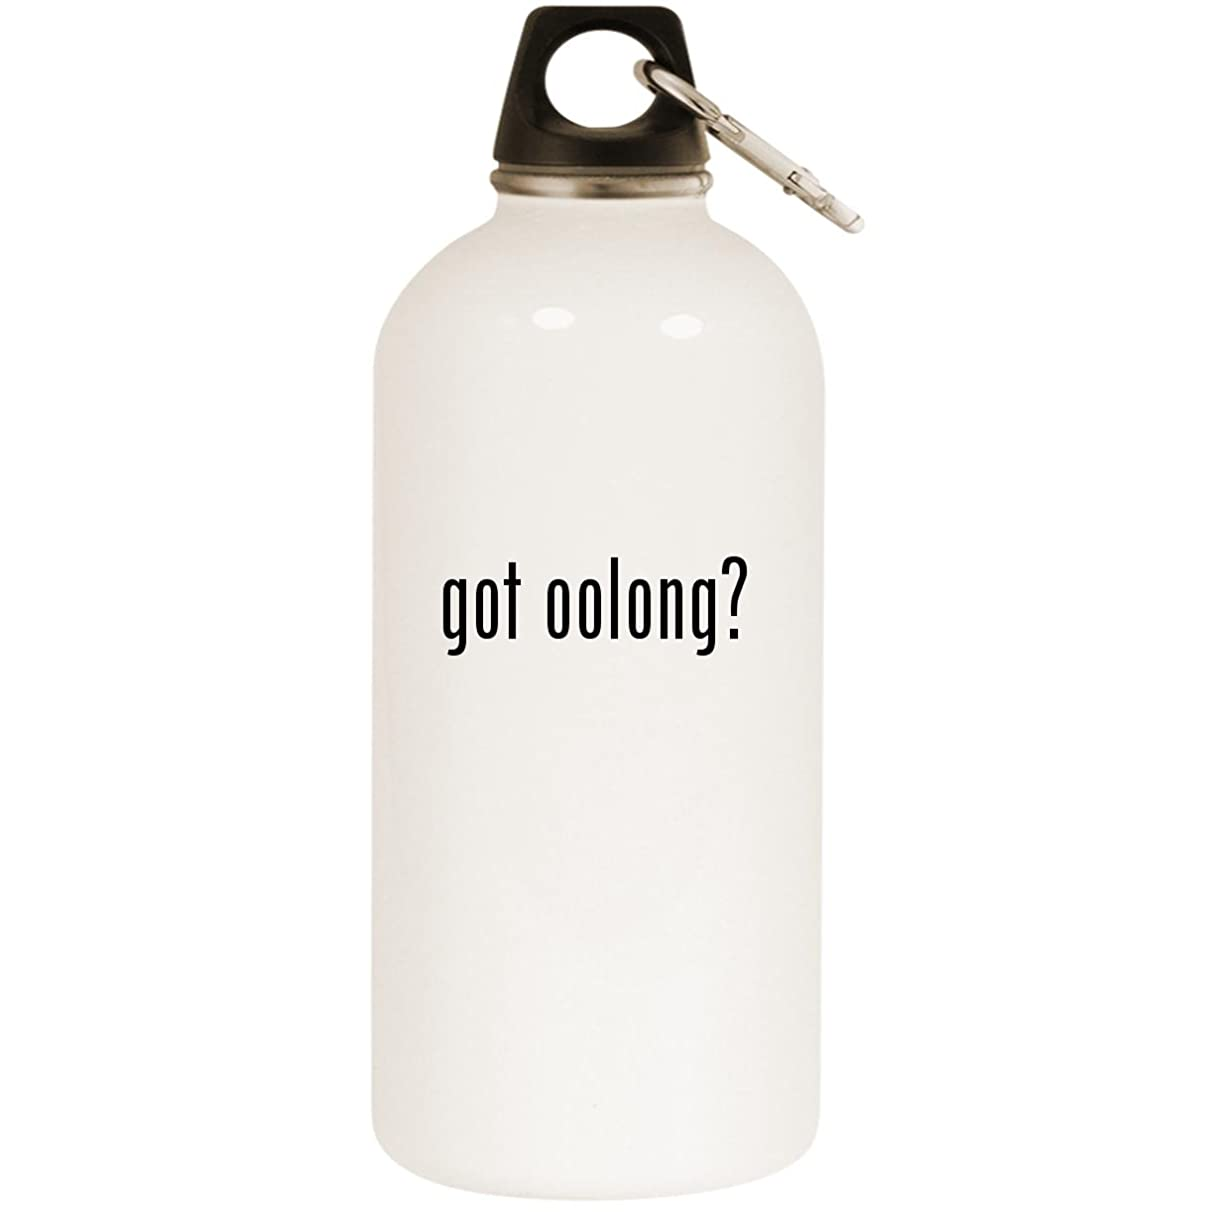 Molandra Products got Oolong? - White 20oz Stainless Steel Water Bottle with Carabiner